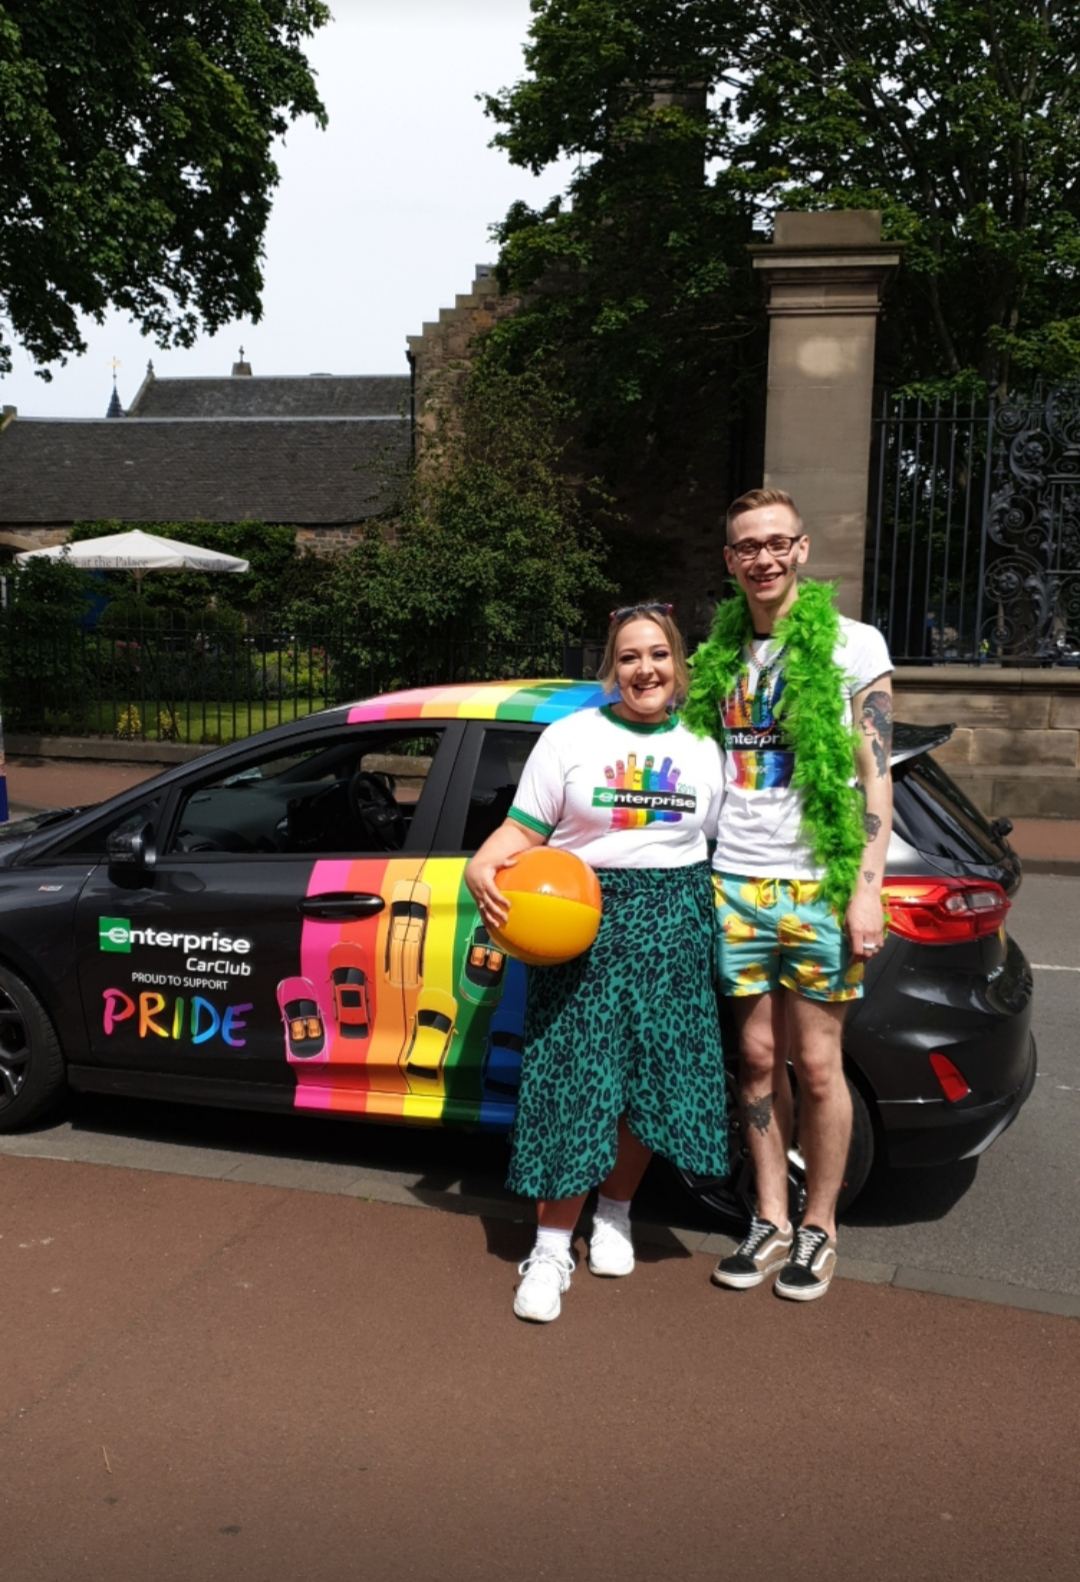 Our LGBTQ colleague Dylan takes PRIDE in his achievements